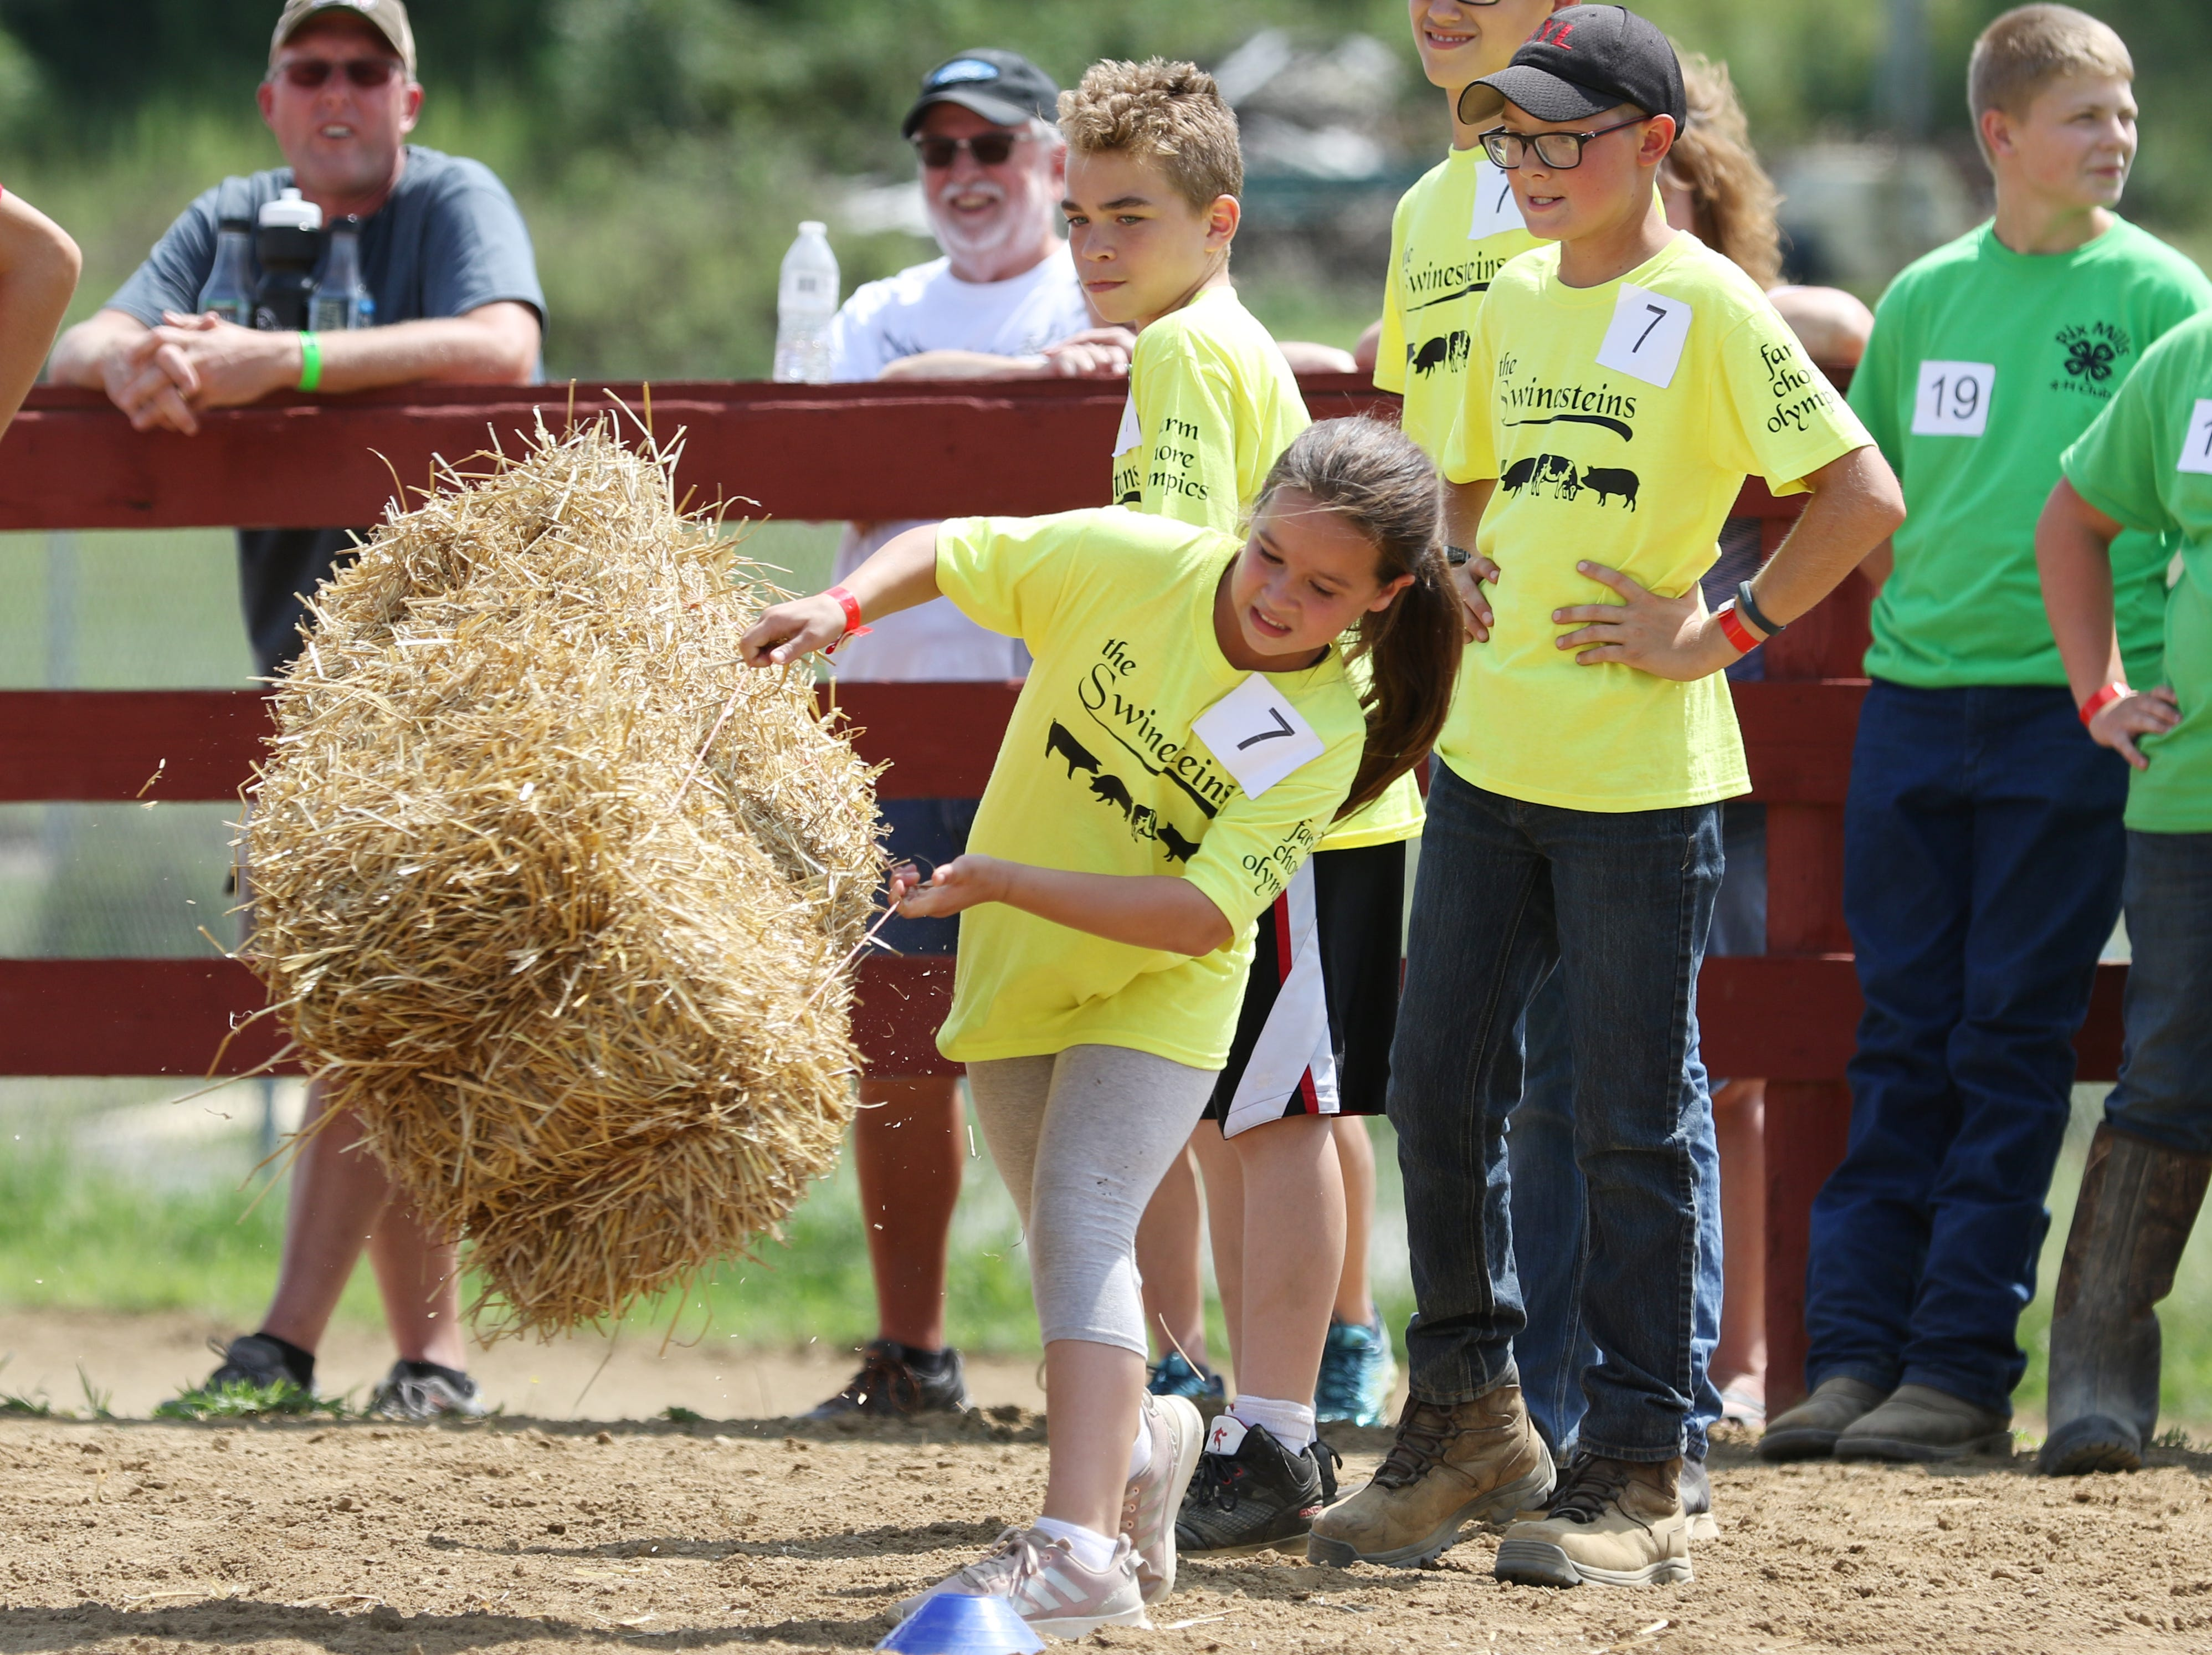 The Junior Fair presented a new event on Monday, the Farm Chore Olympics. The event started with the pooper scooper task, then a egg toss, followed by a hay bale toss, water relay, and finally a water melon seed spitting contest.